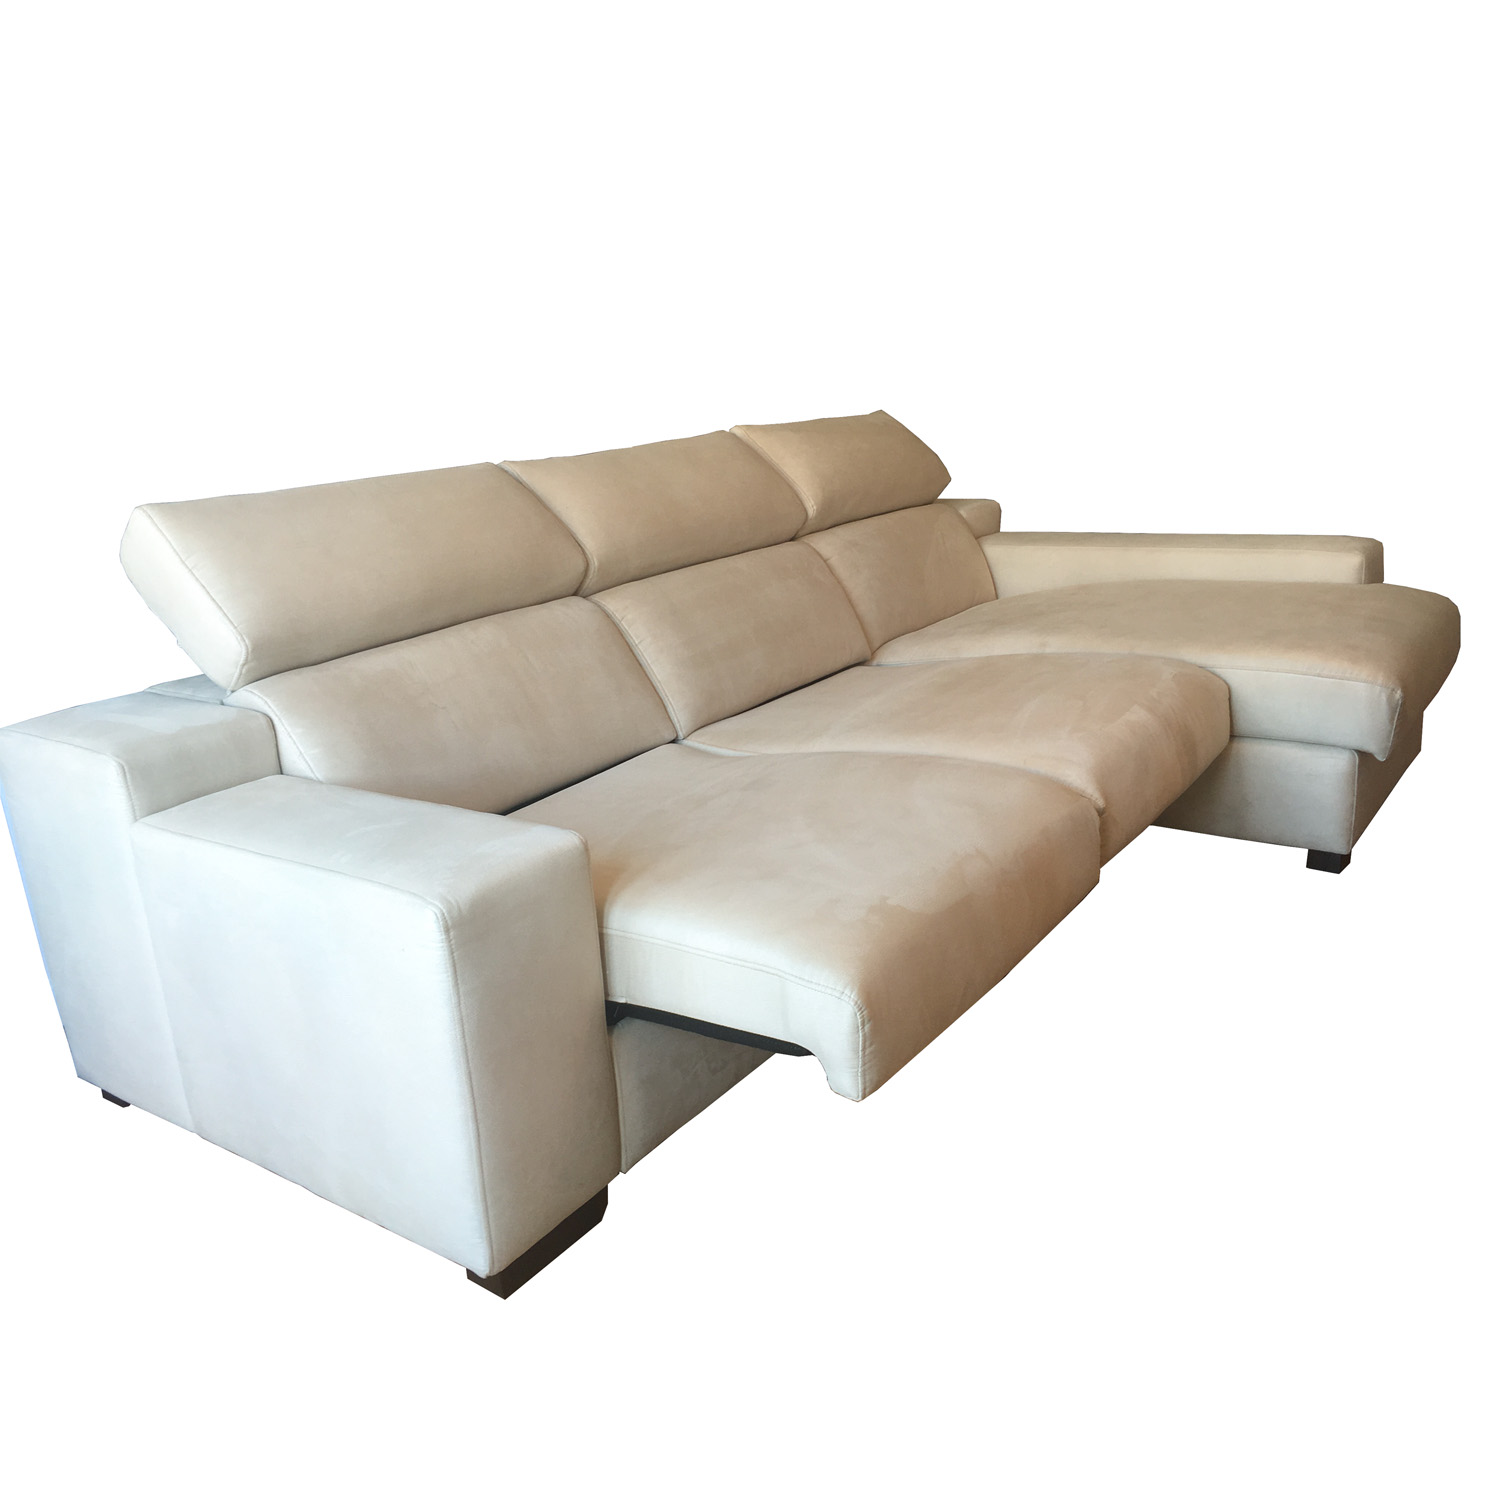 80 Off Fama Fama Lotus Sofa With Chaise Sofas